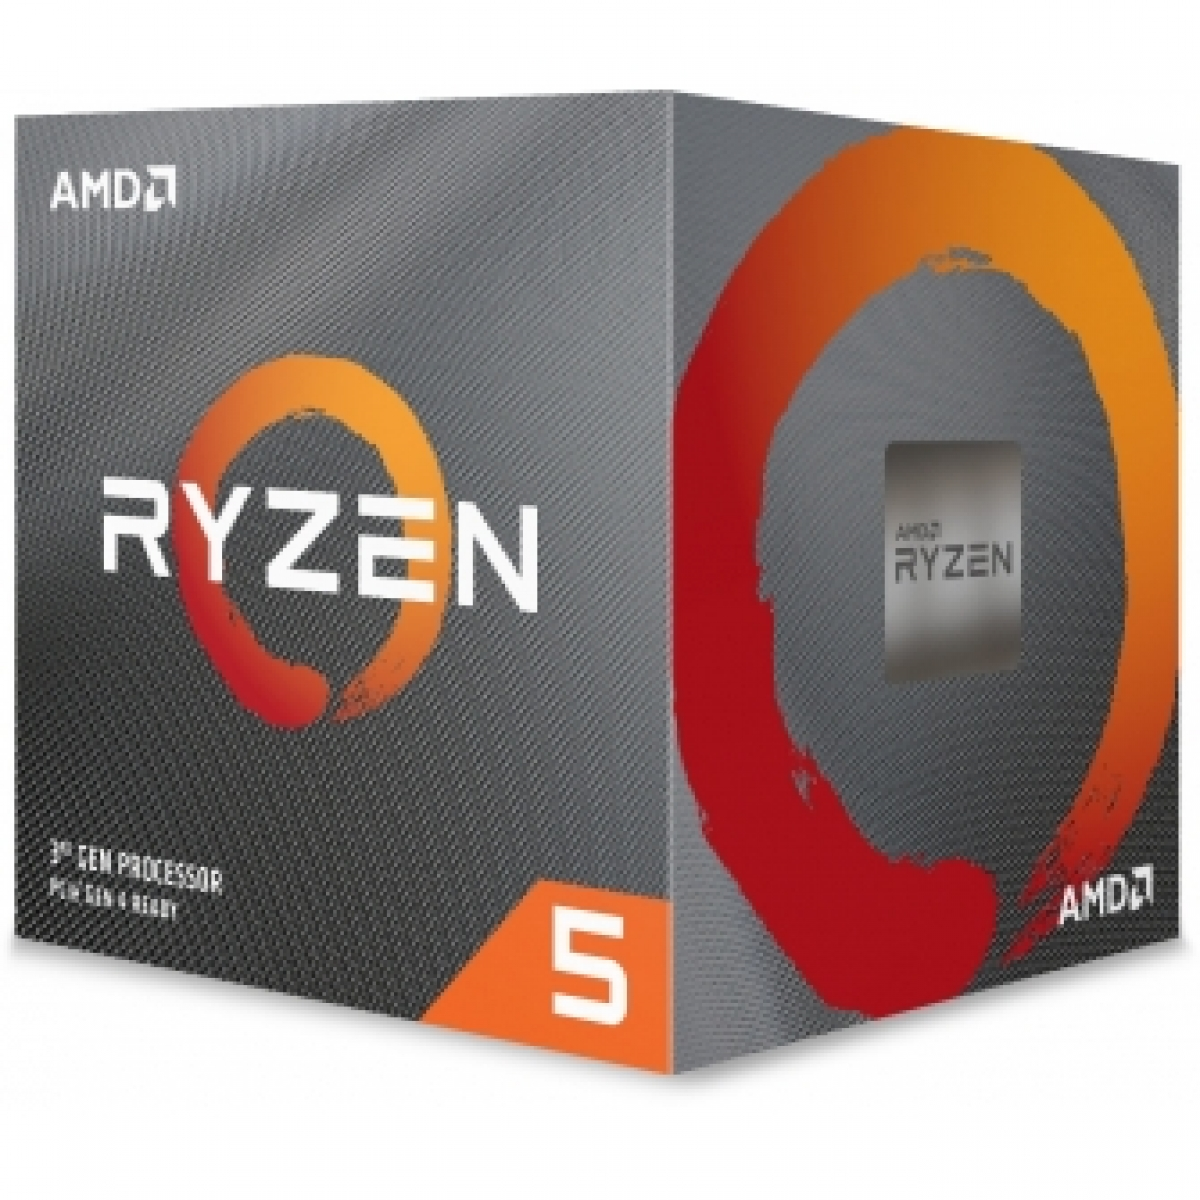 Processador AMD Ryzen 5 3600x 3.8ghz (4.4ghz Turbo), 6-cores 12-threads, Cooler Wraith Spire, AM4, YD360XBBAFBOX, S/ Video